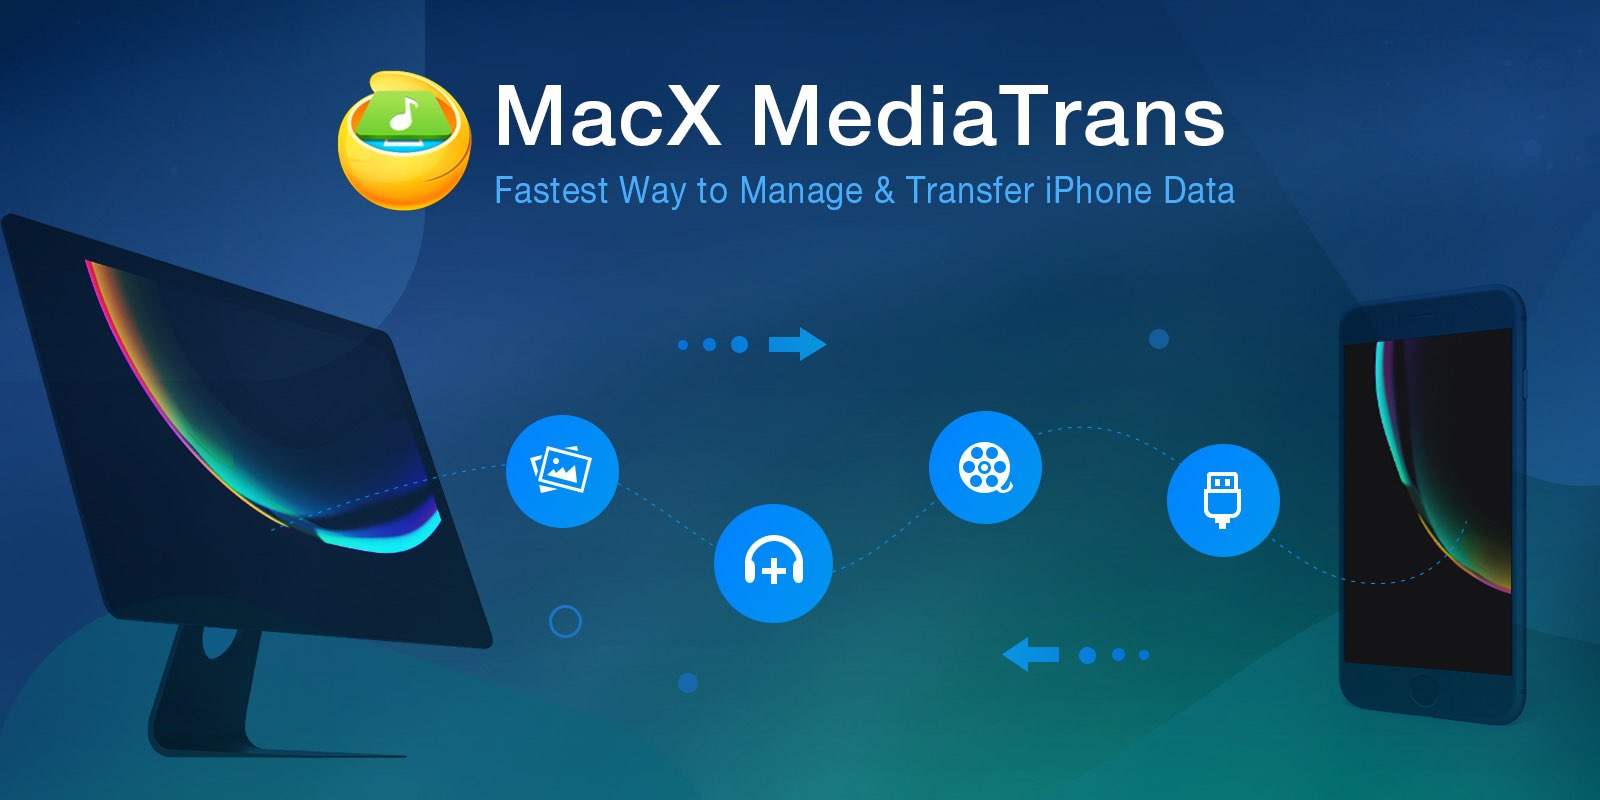 iTunes alternative - MacX MediaTrans for Mac and Windows includes selective sync and many features not supported by Apple's clunky iTunes jukebox software